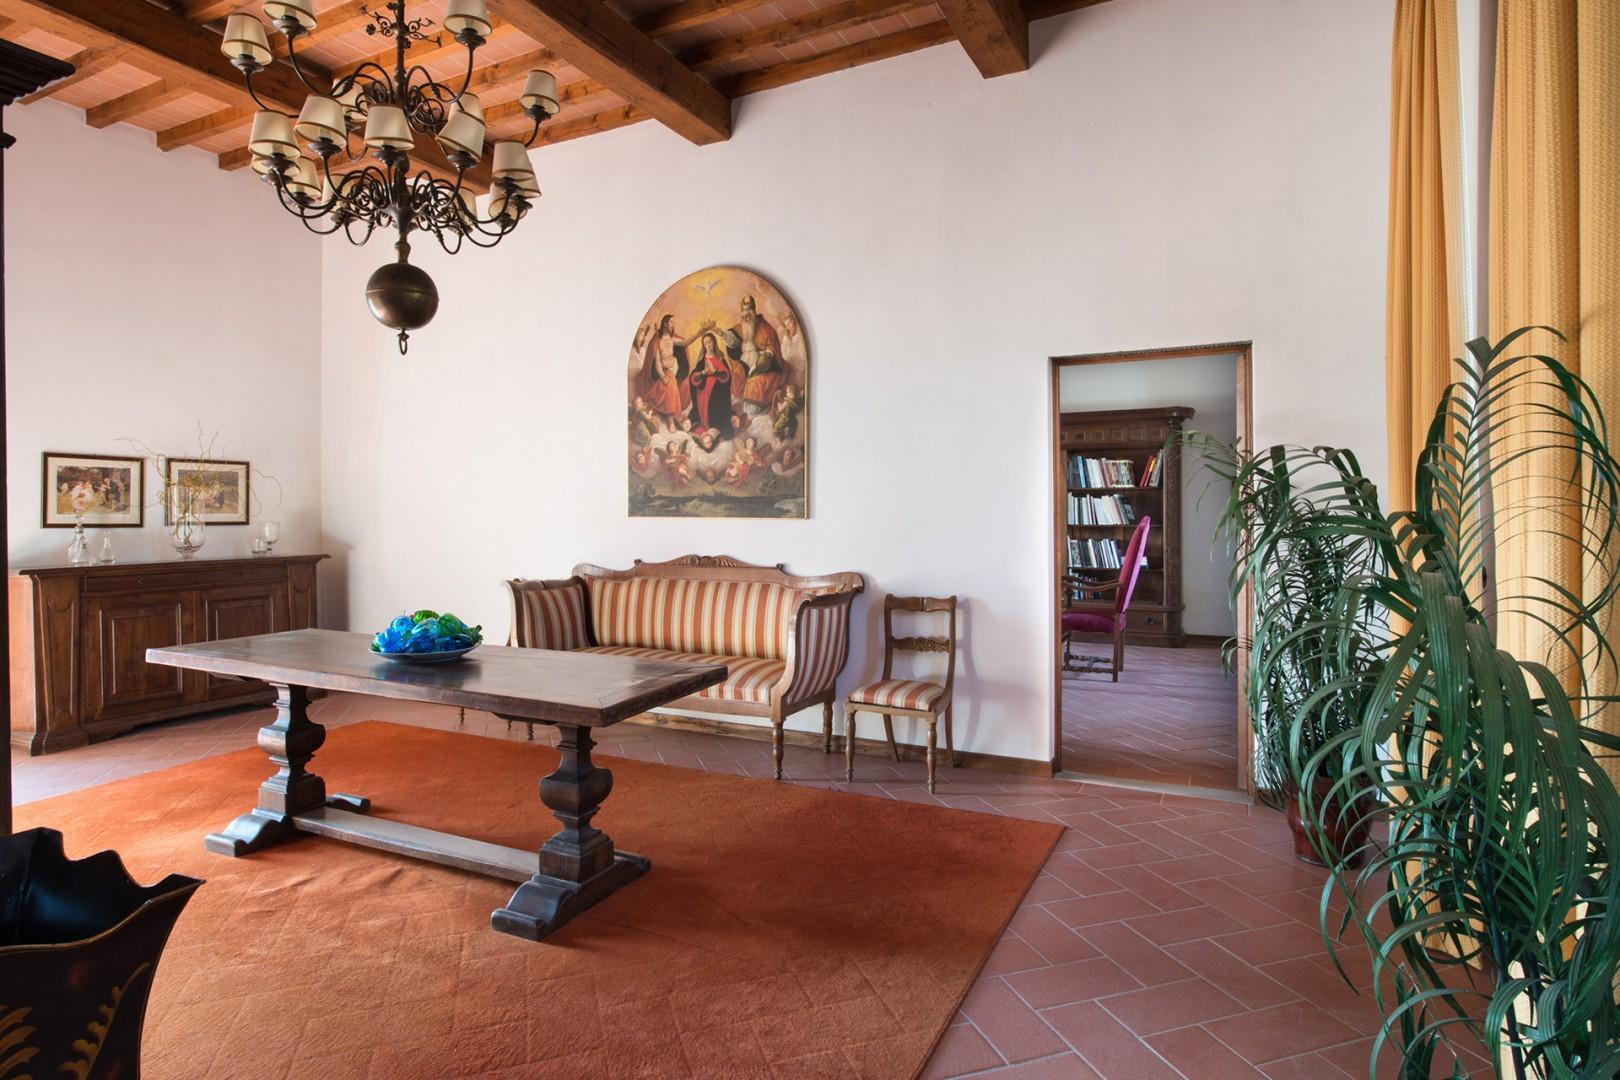 Spacious entry foyer hints at the roominess of this generously proportioned villa.